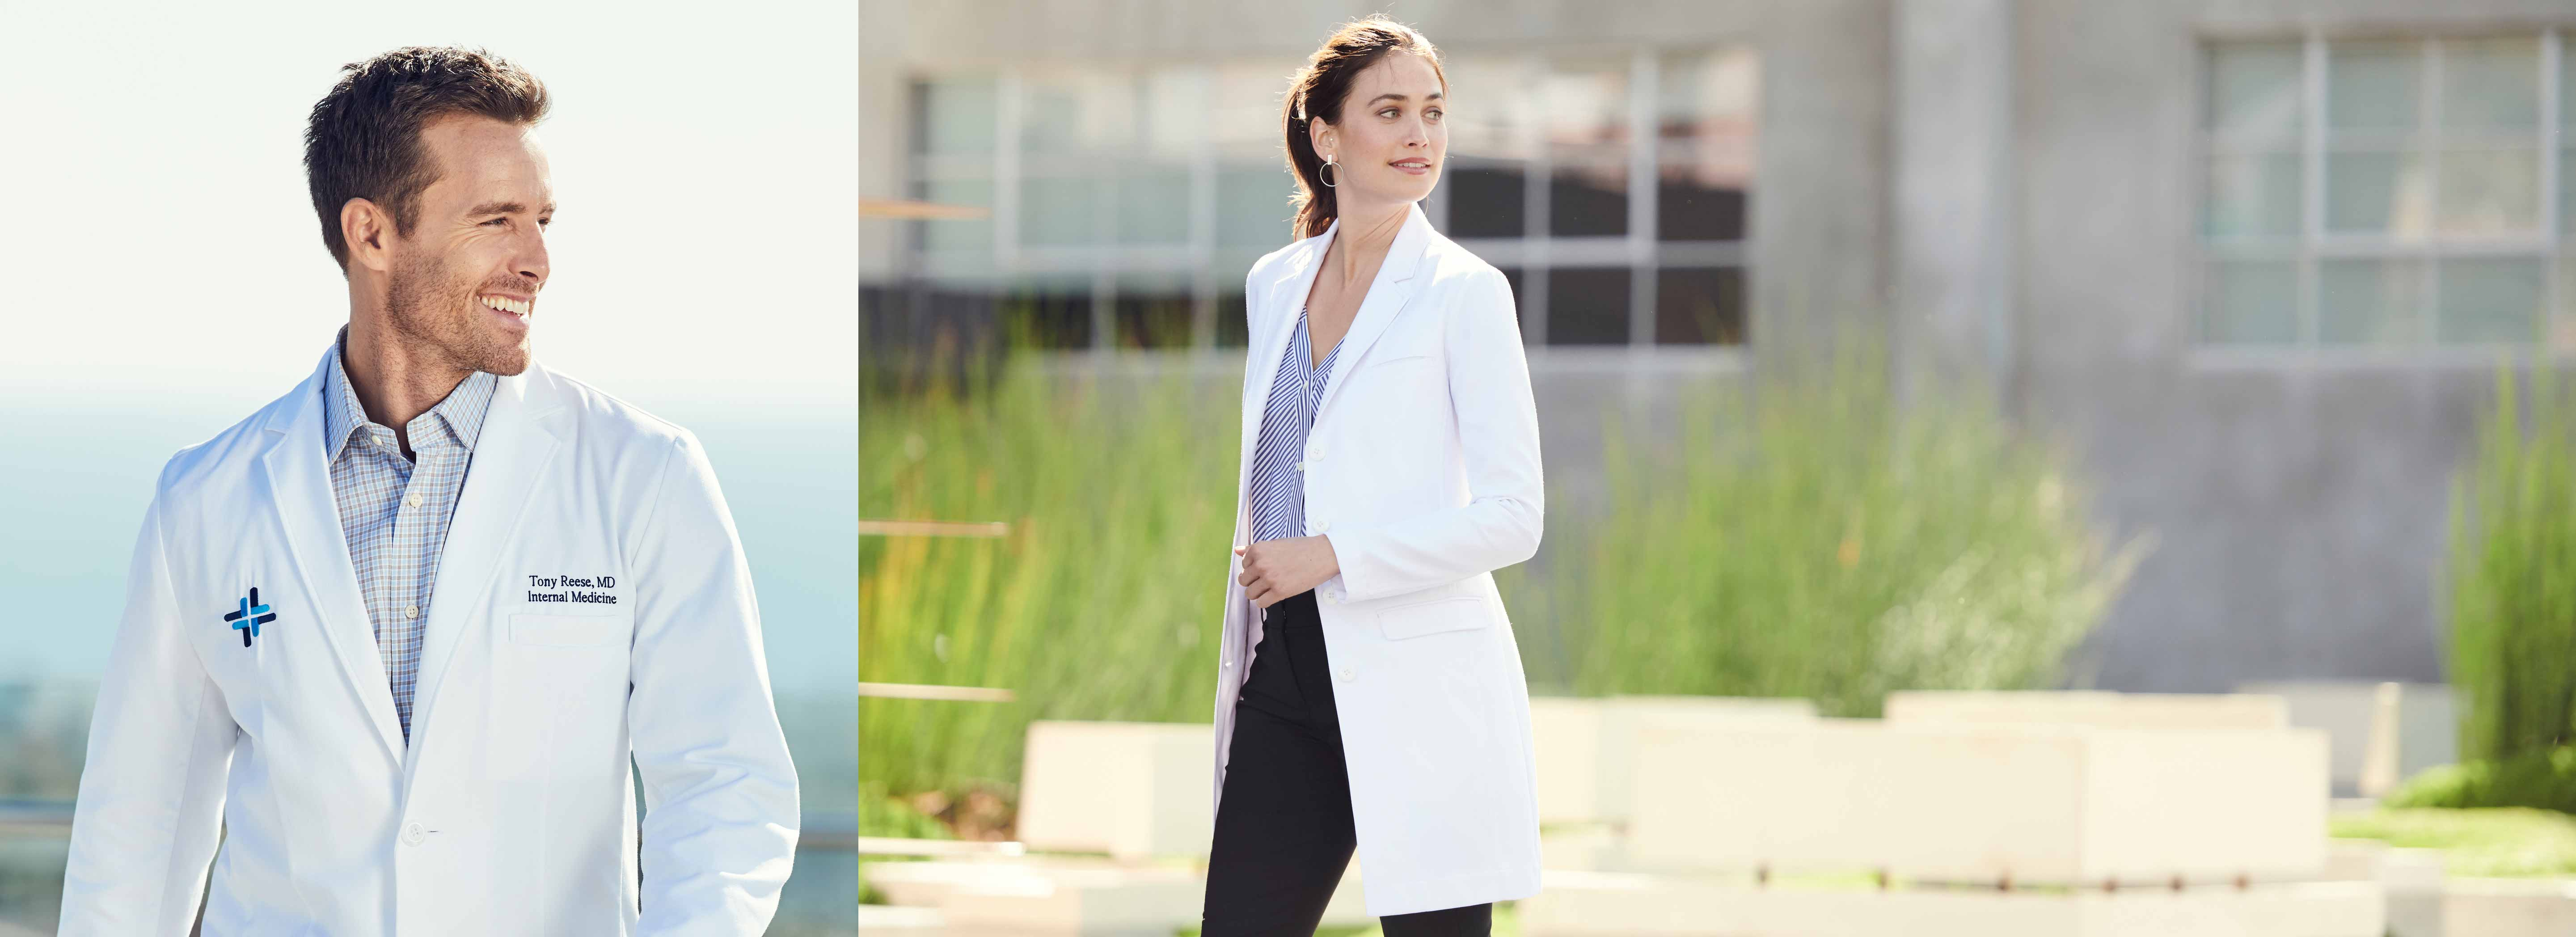 Slim-Fit Lab Coats